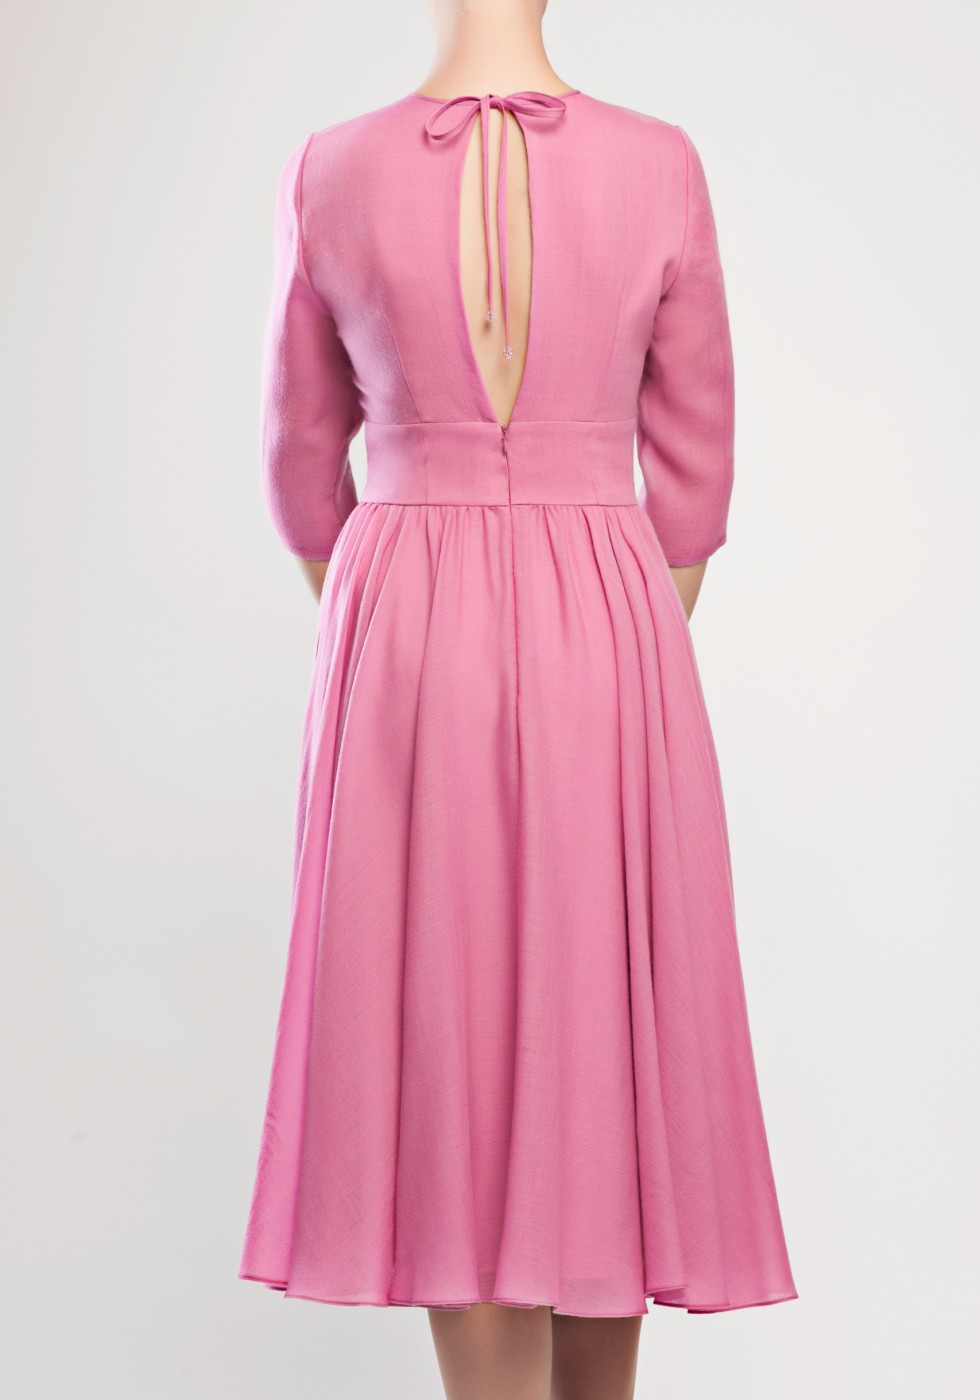 Woolen silk-lined dress